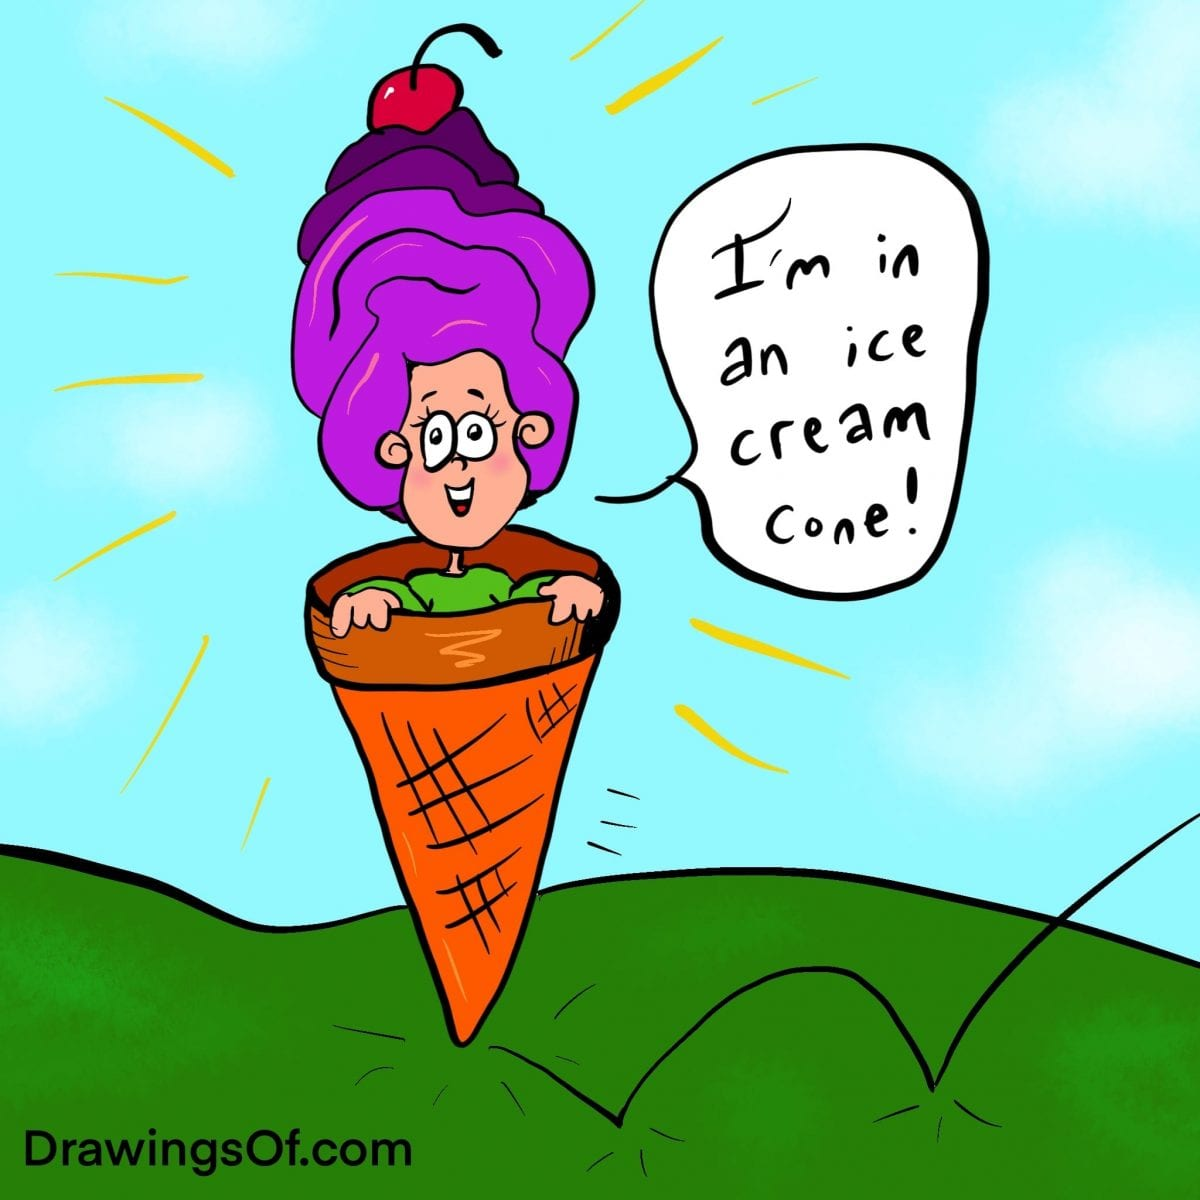 Person Bouncing in an Ice Cream Cone?!